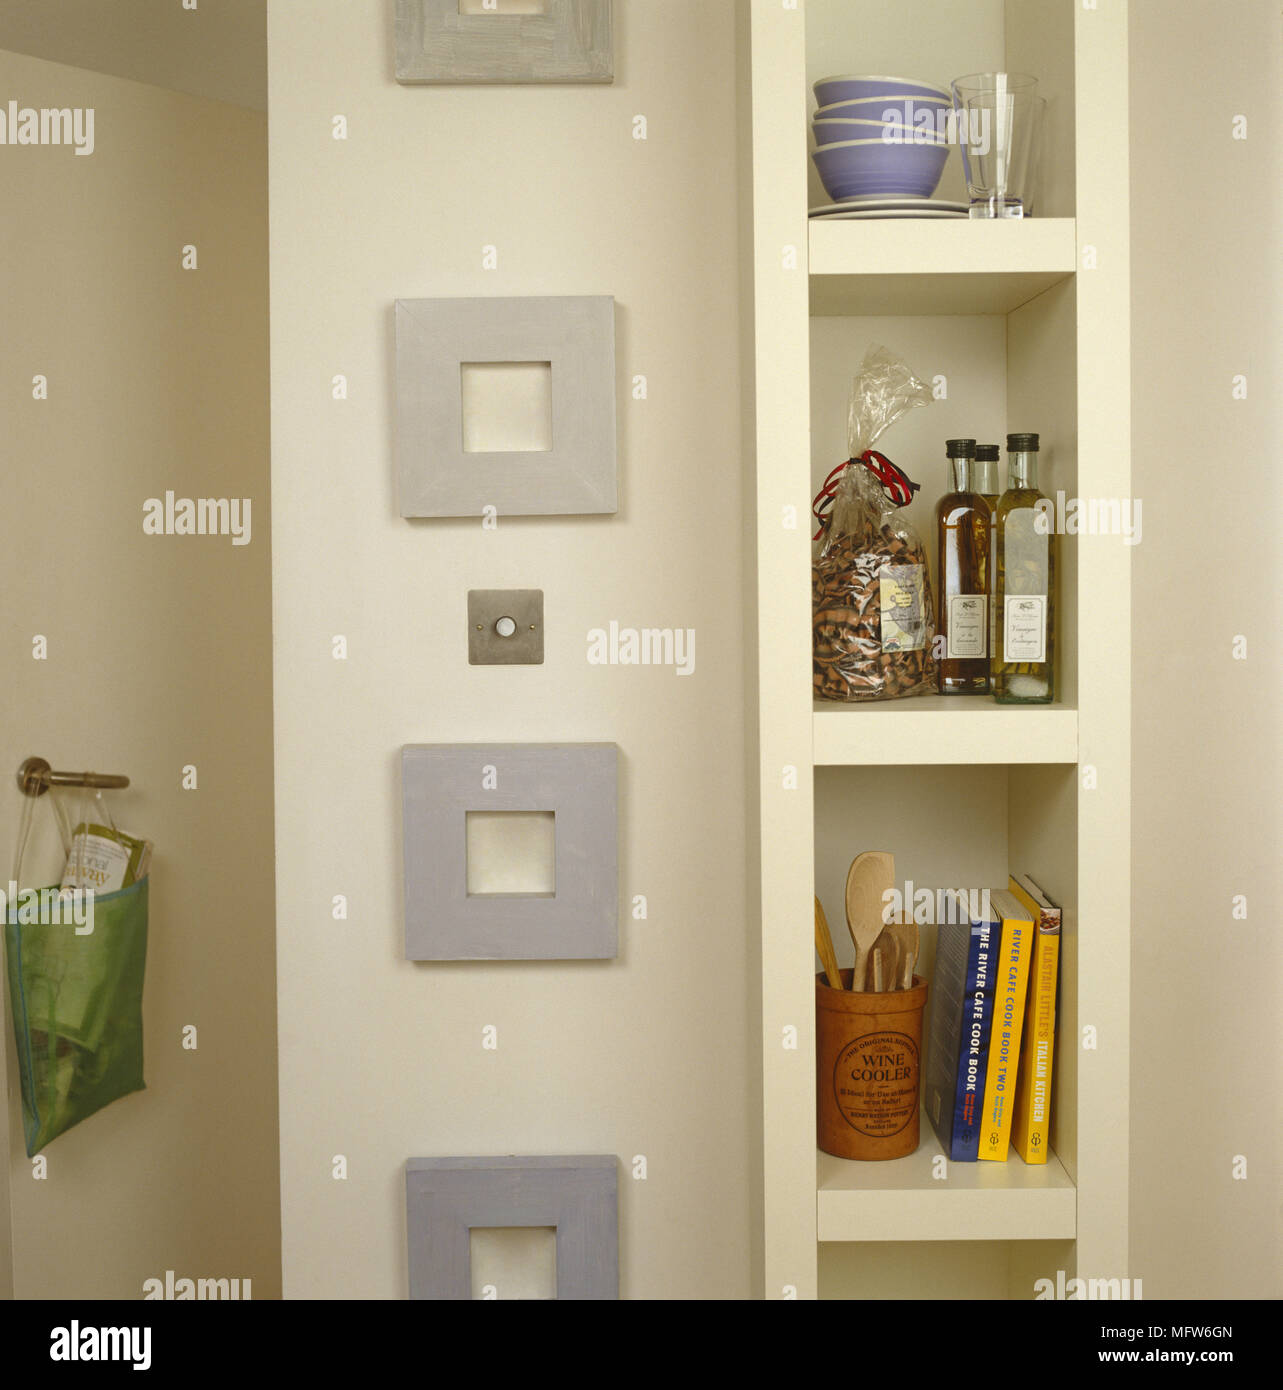 Built in shelving detail picture frames kitchenware Stock Photo ...